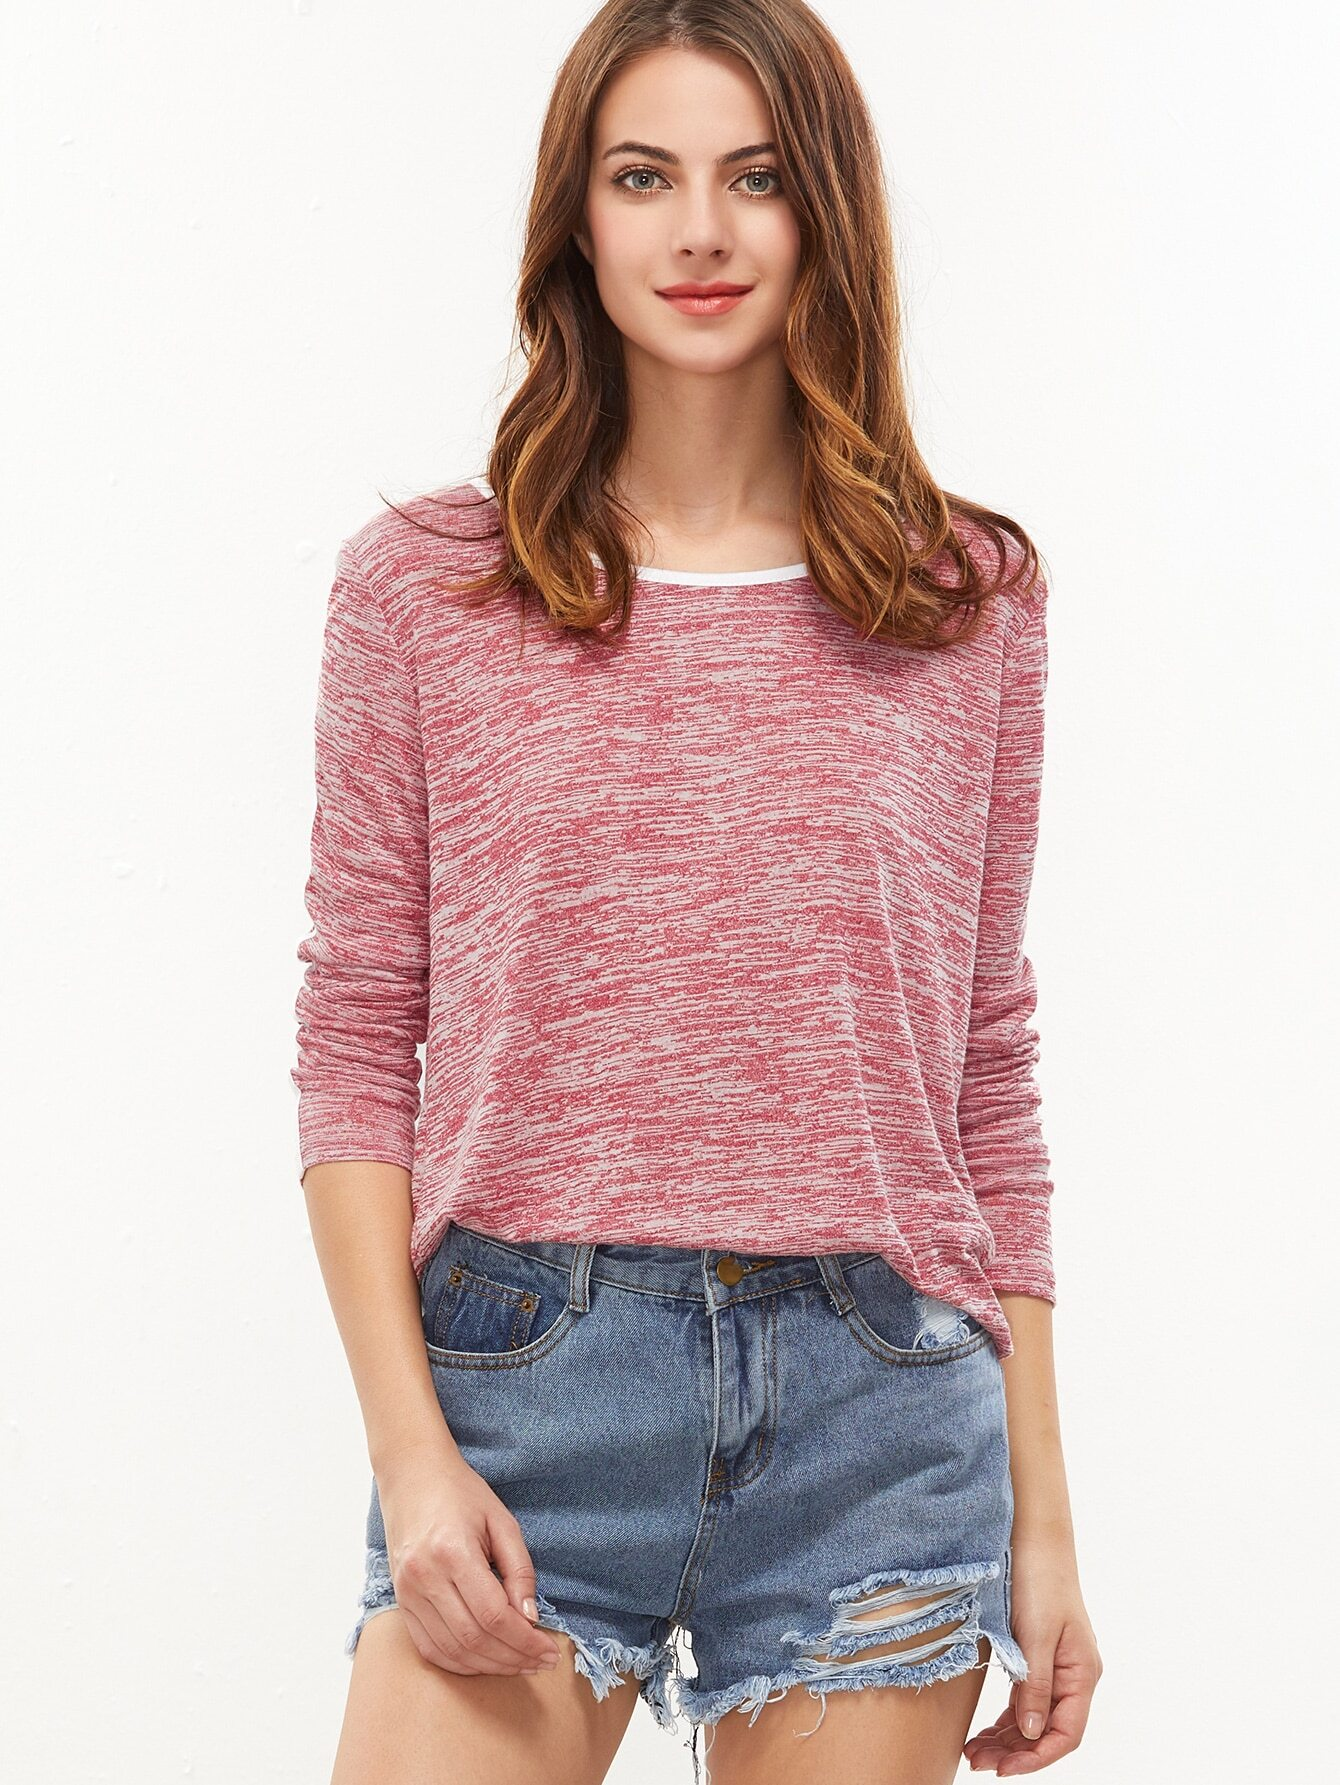 Buy Red Marled Knit Contrast Binding T-shirt